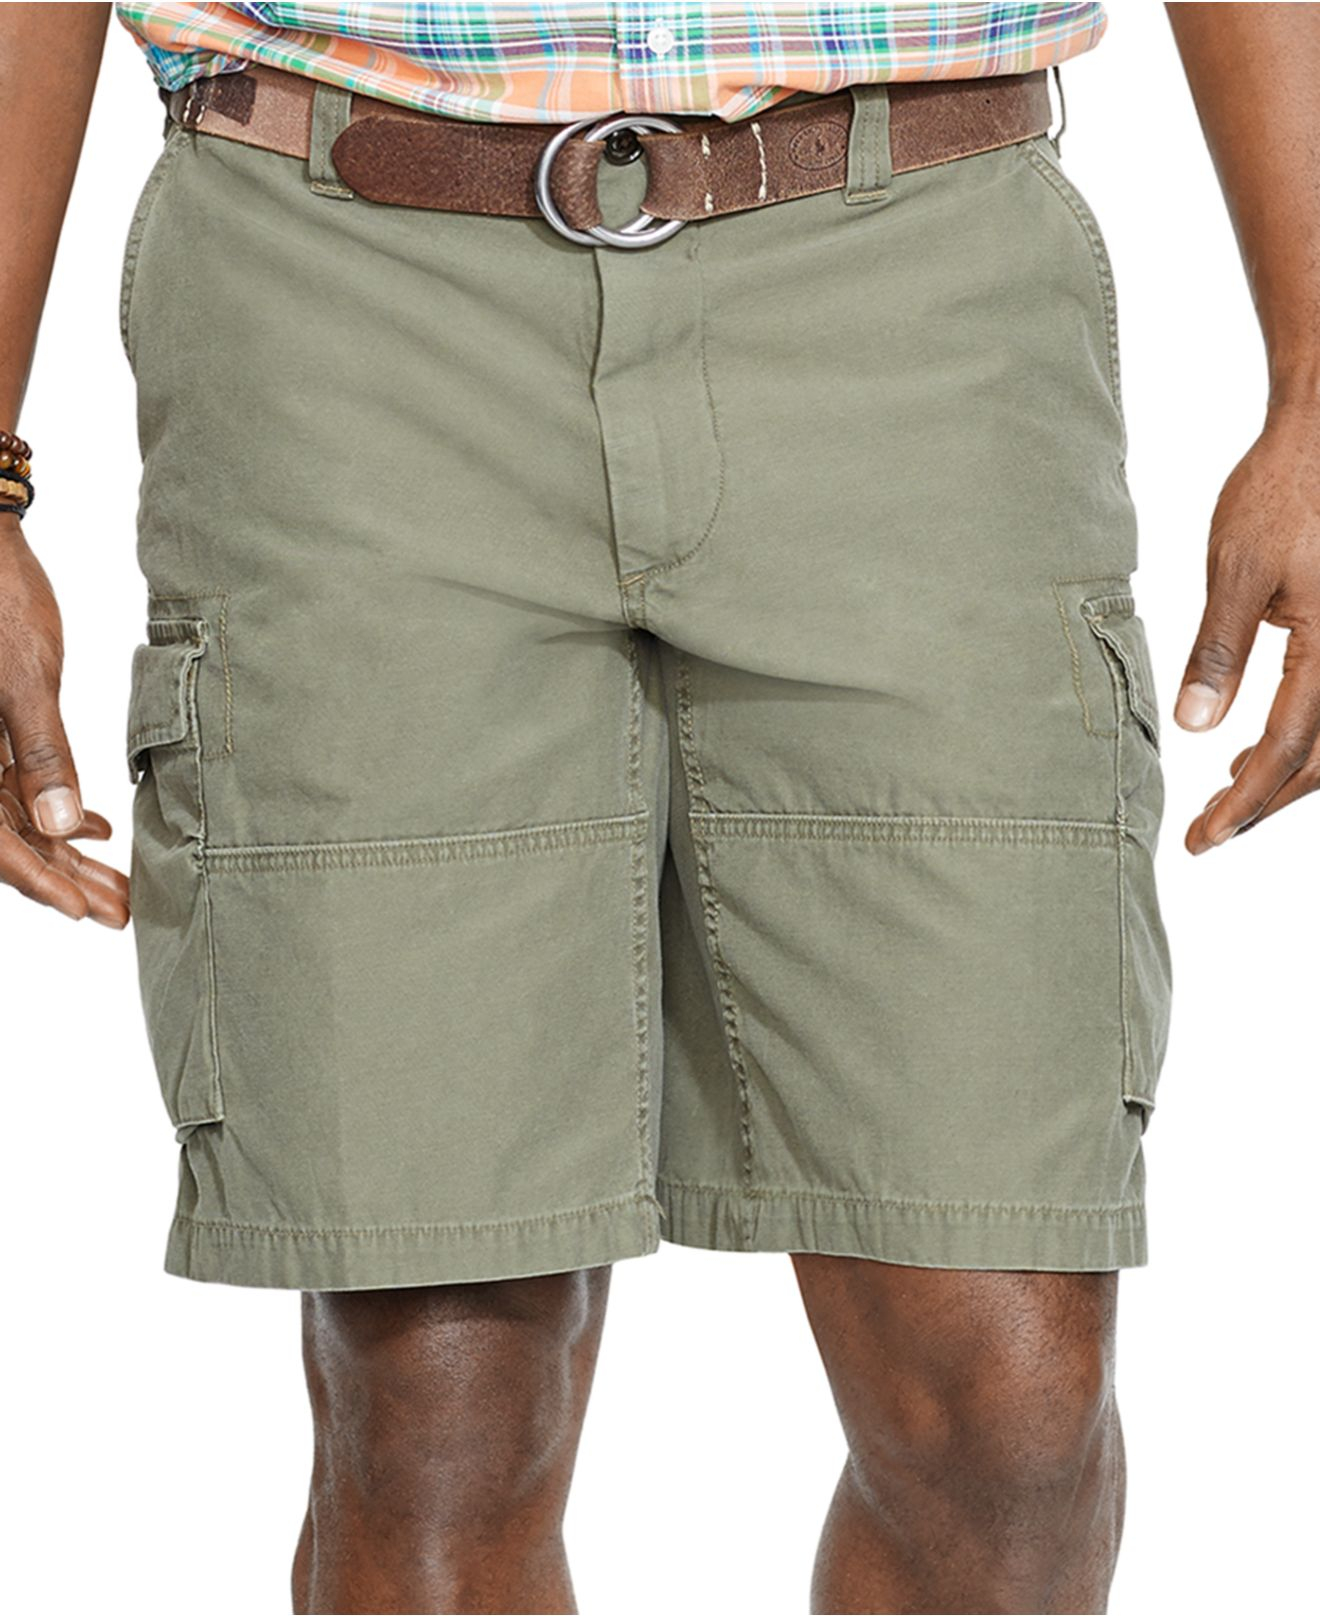 1c8c4a7de2 Polo Ralph Lauren Big And Tall Classic-fit Corporal Cargo Shorts in ...